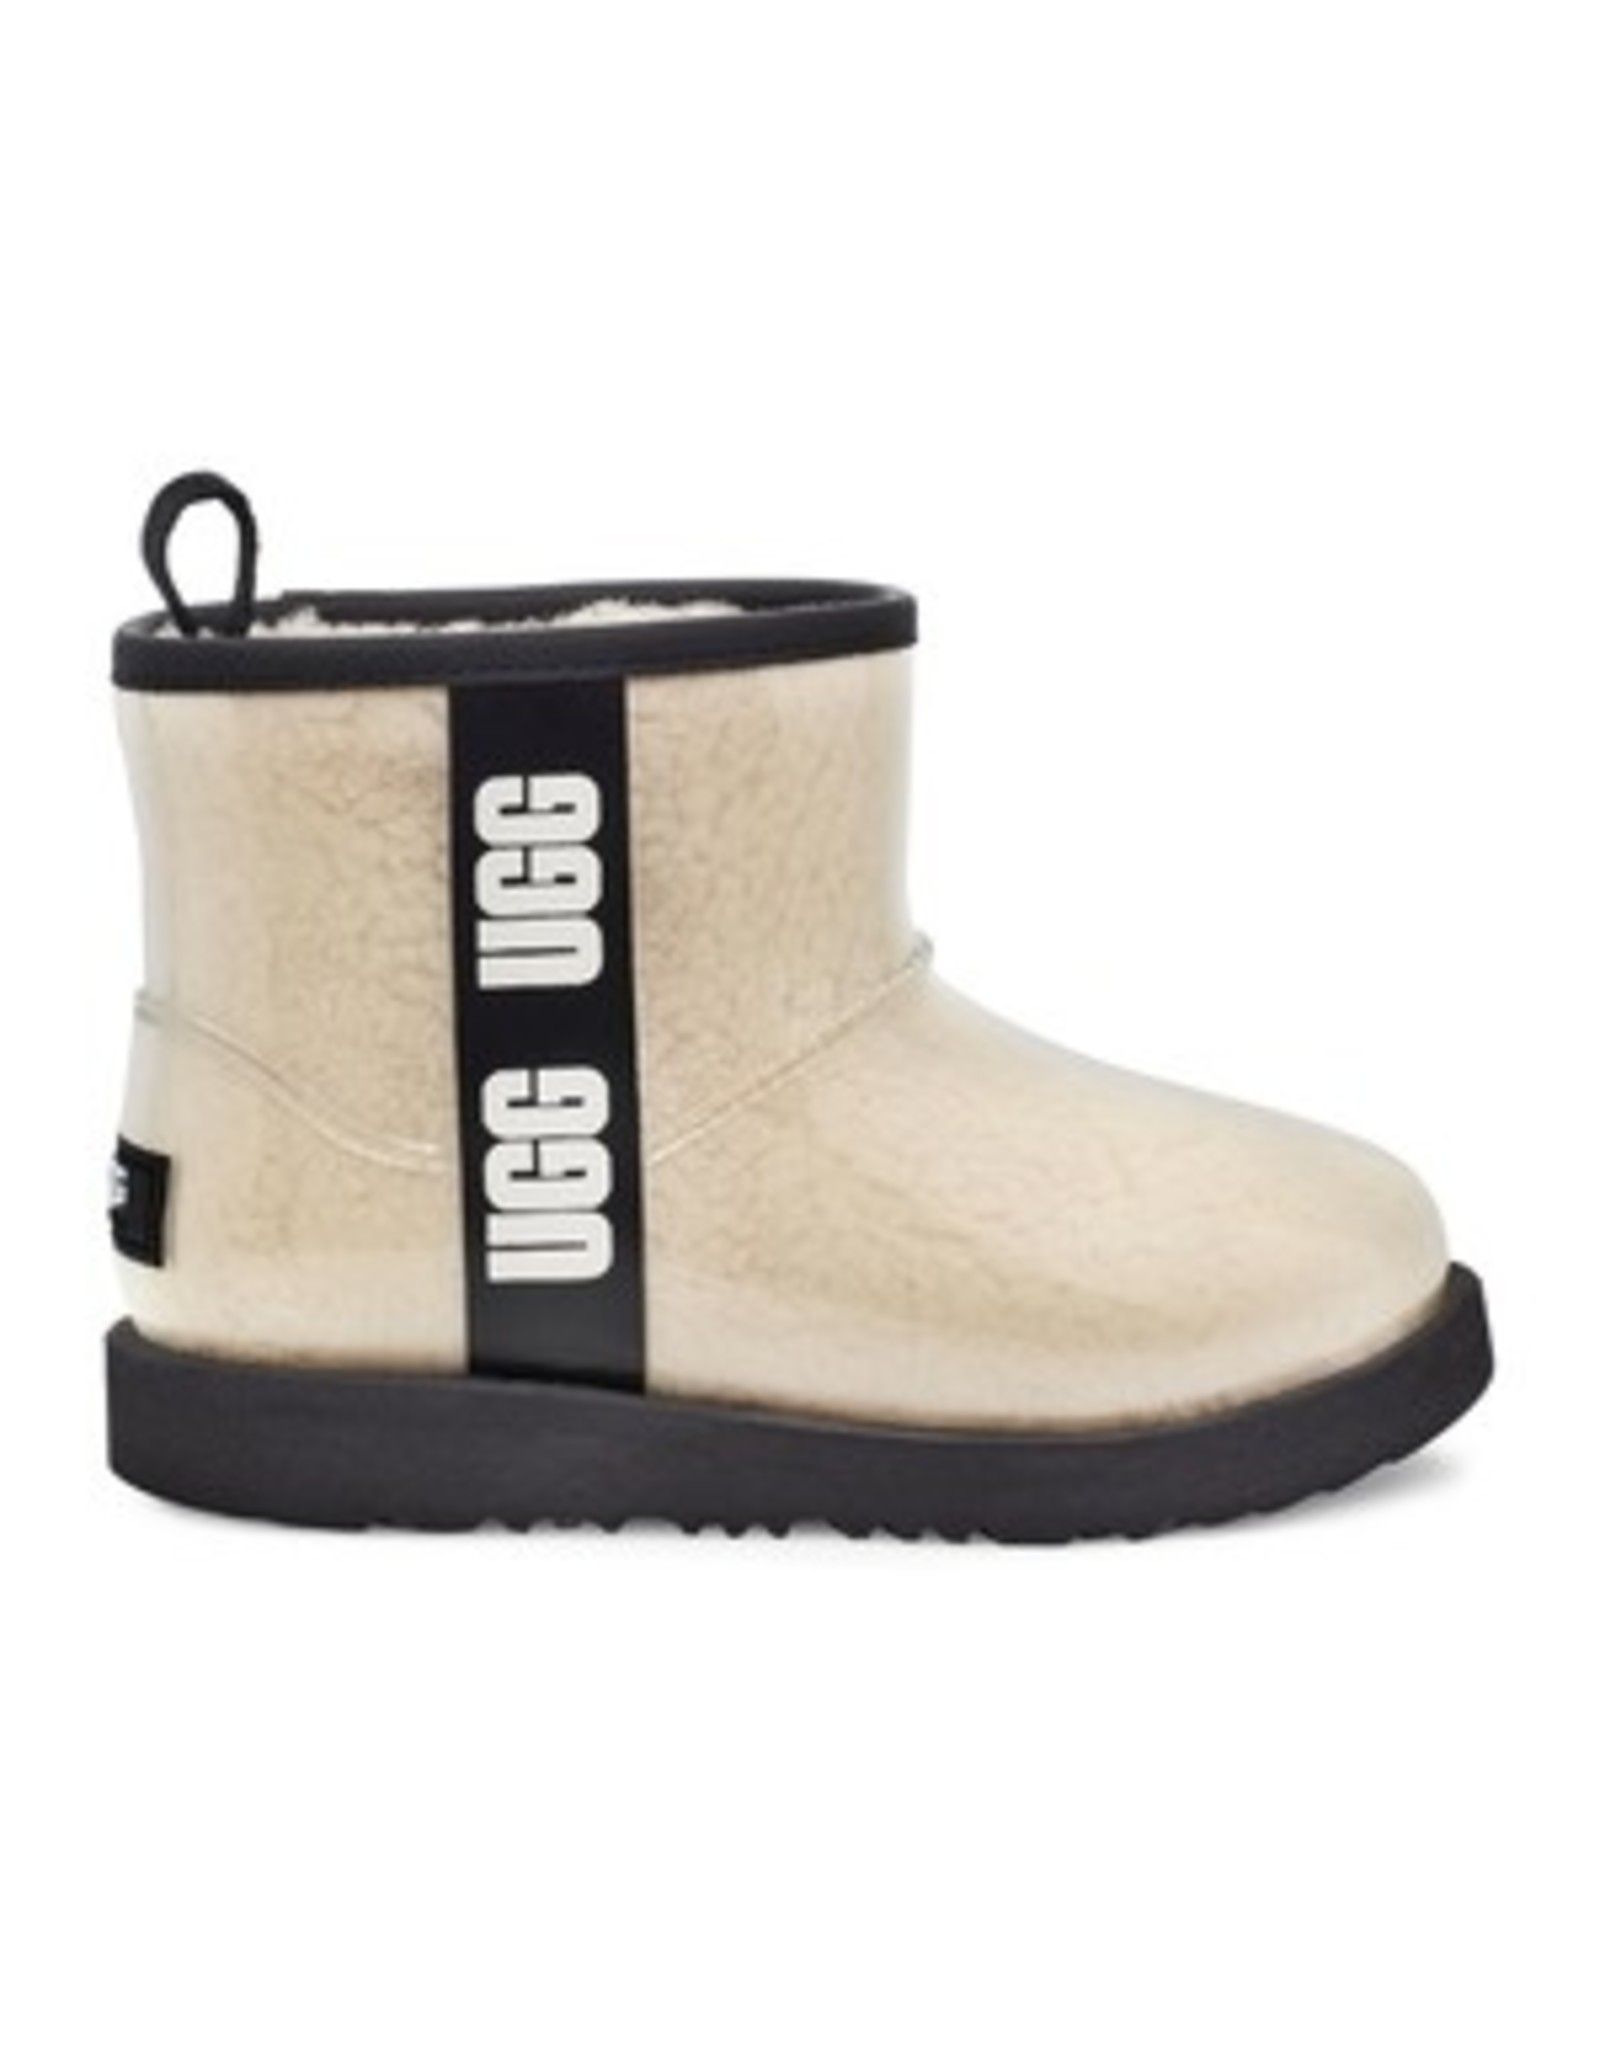 UGG UGGS CLEAR MINI CASUAL BOOTS